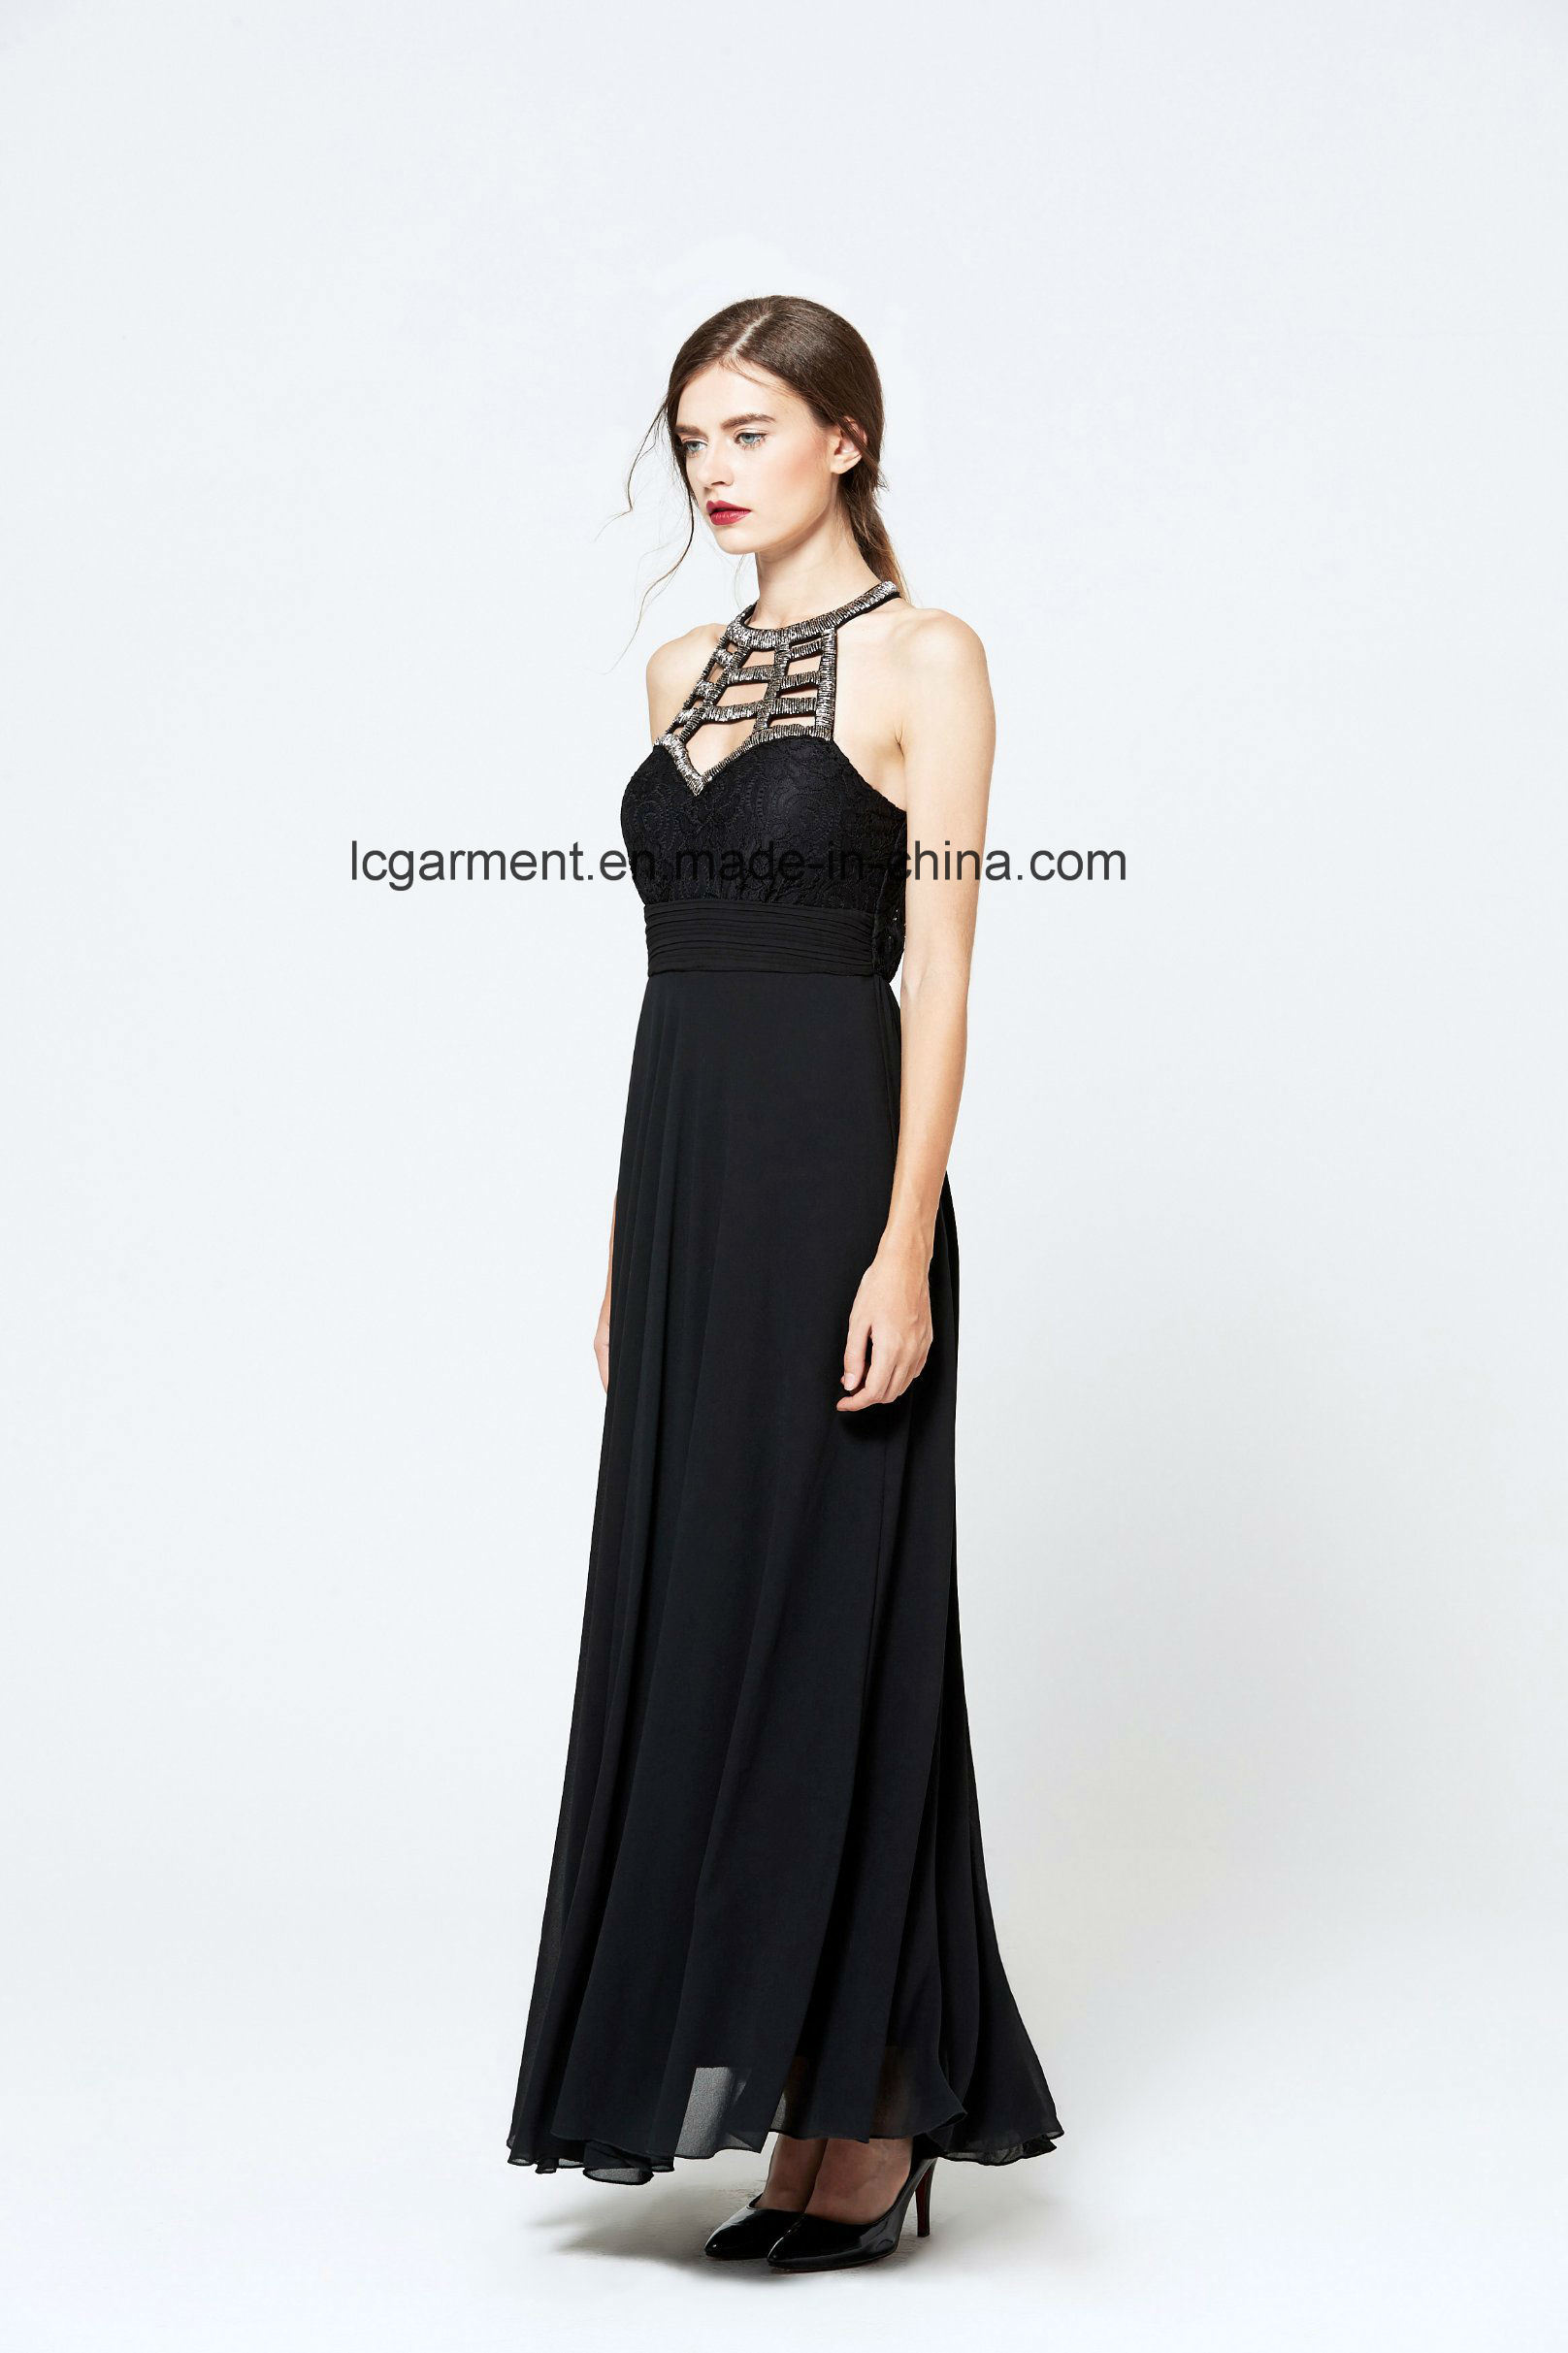 New Arrival Elegant Lace Casual Style Maxi Dress with Metal Jewelry